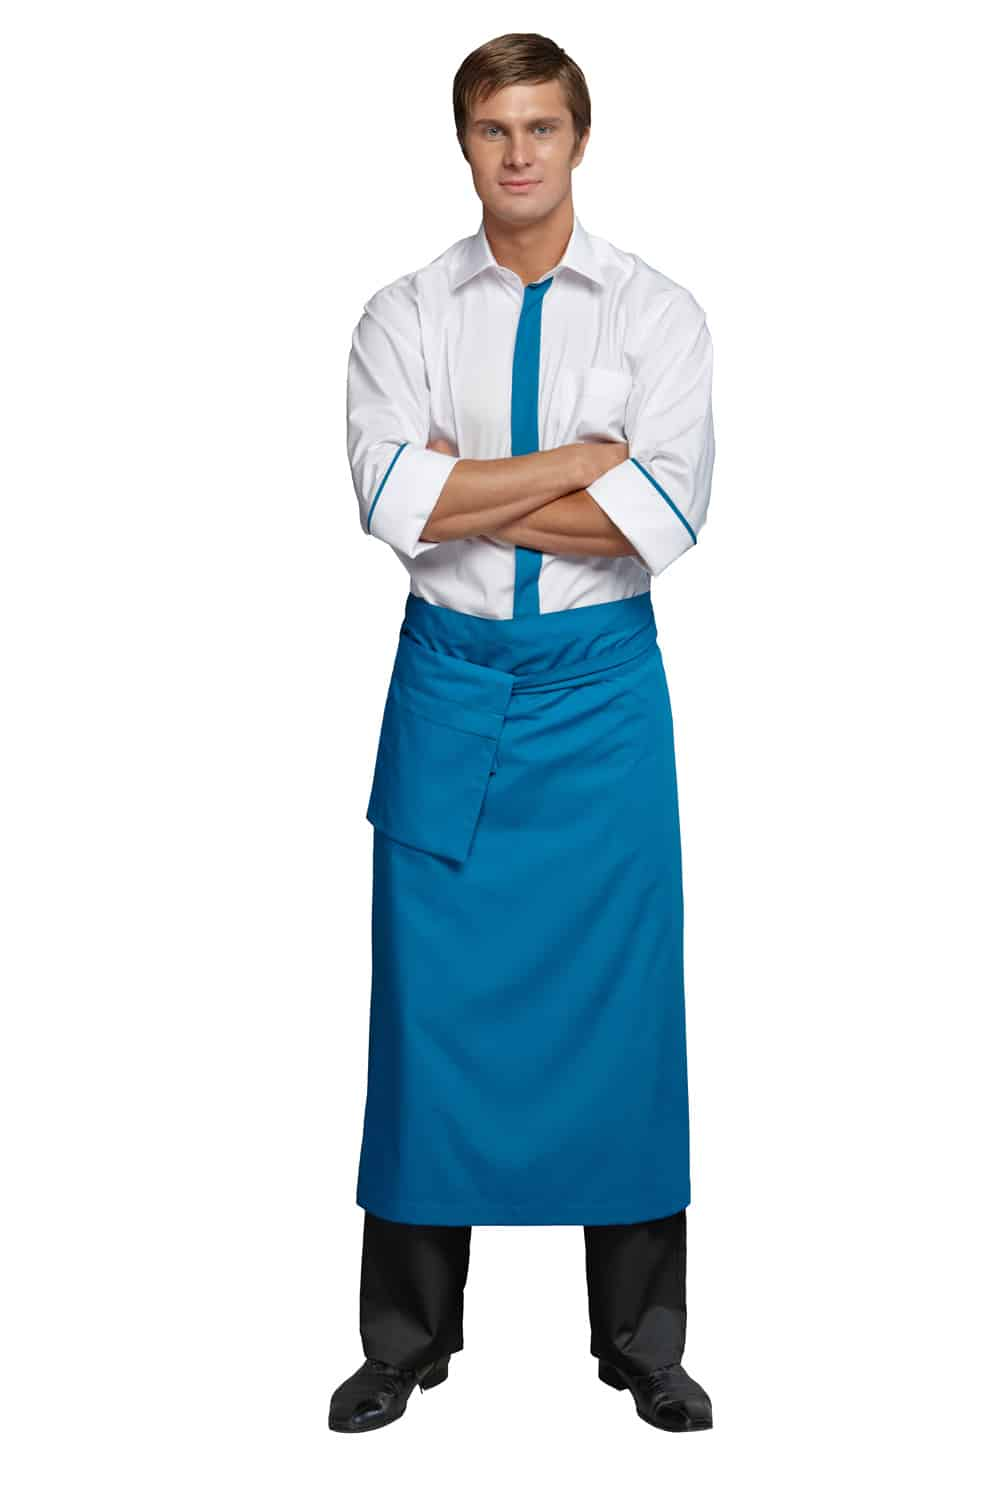 Young man in the form of a waiter or chef, white shirt, blue apron, black pants